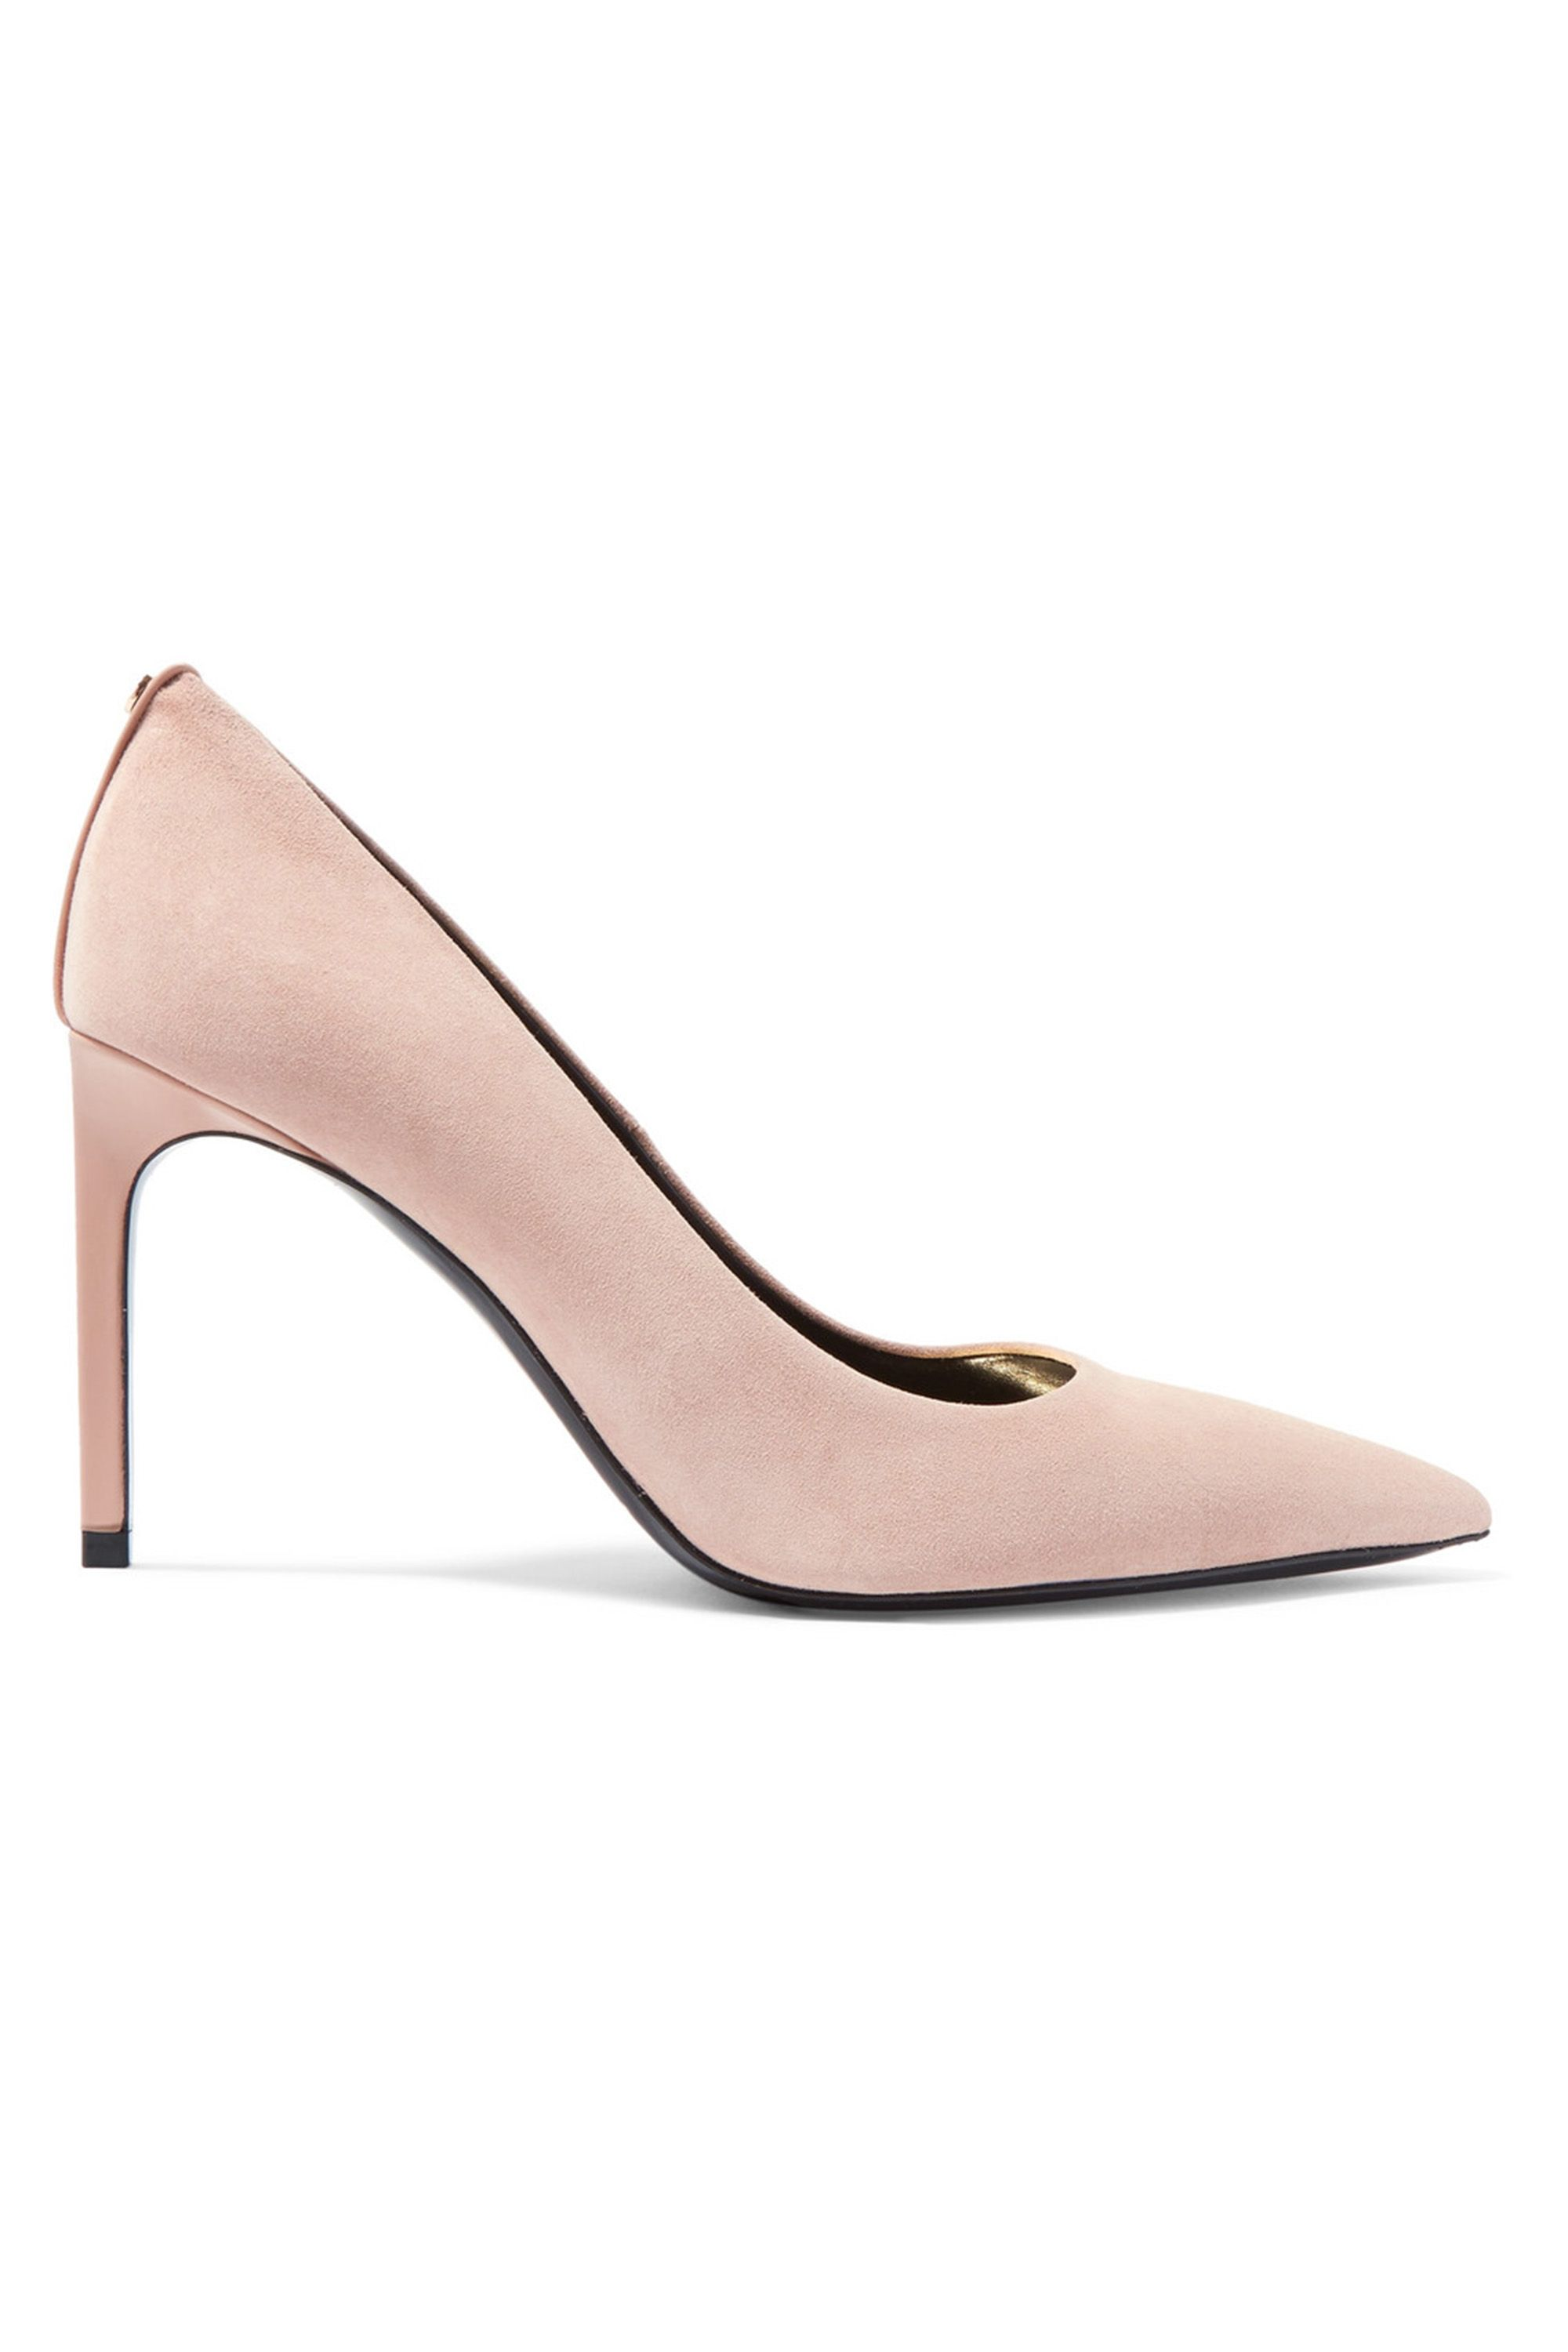 59b7c98a38f3d Best nude court shoes inspired by Meghan Markle